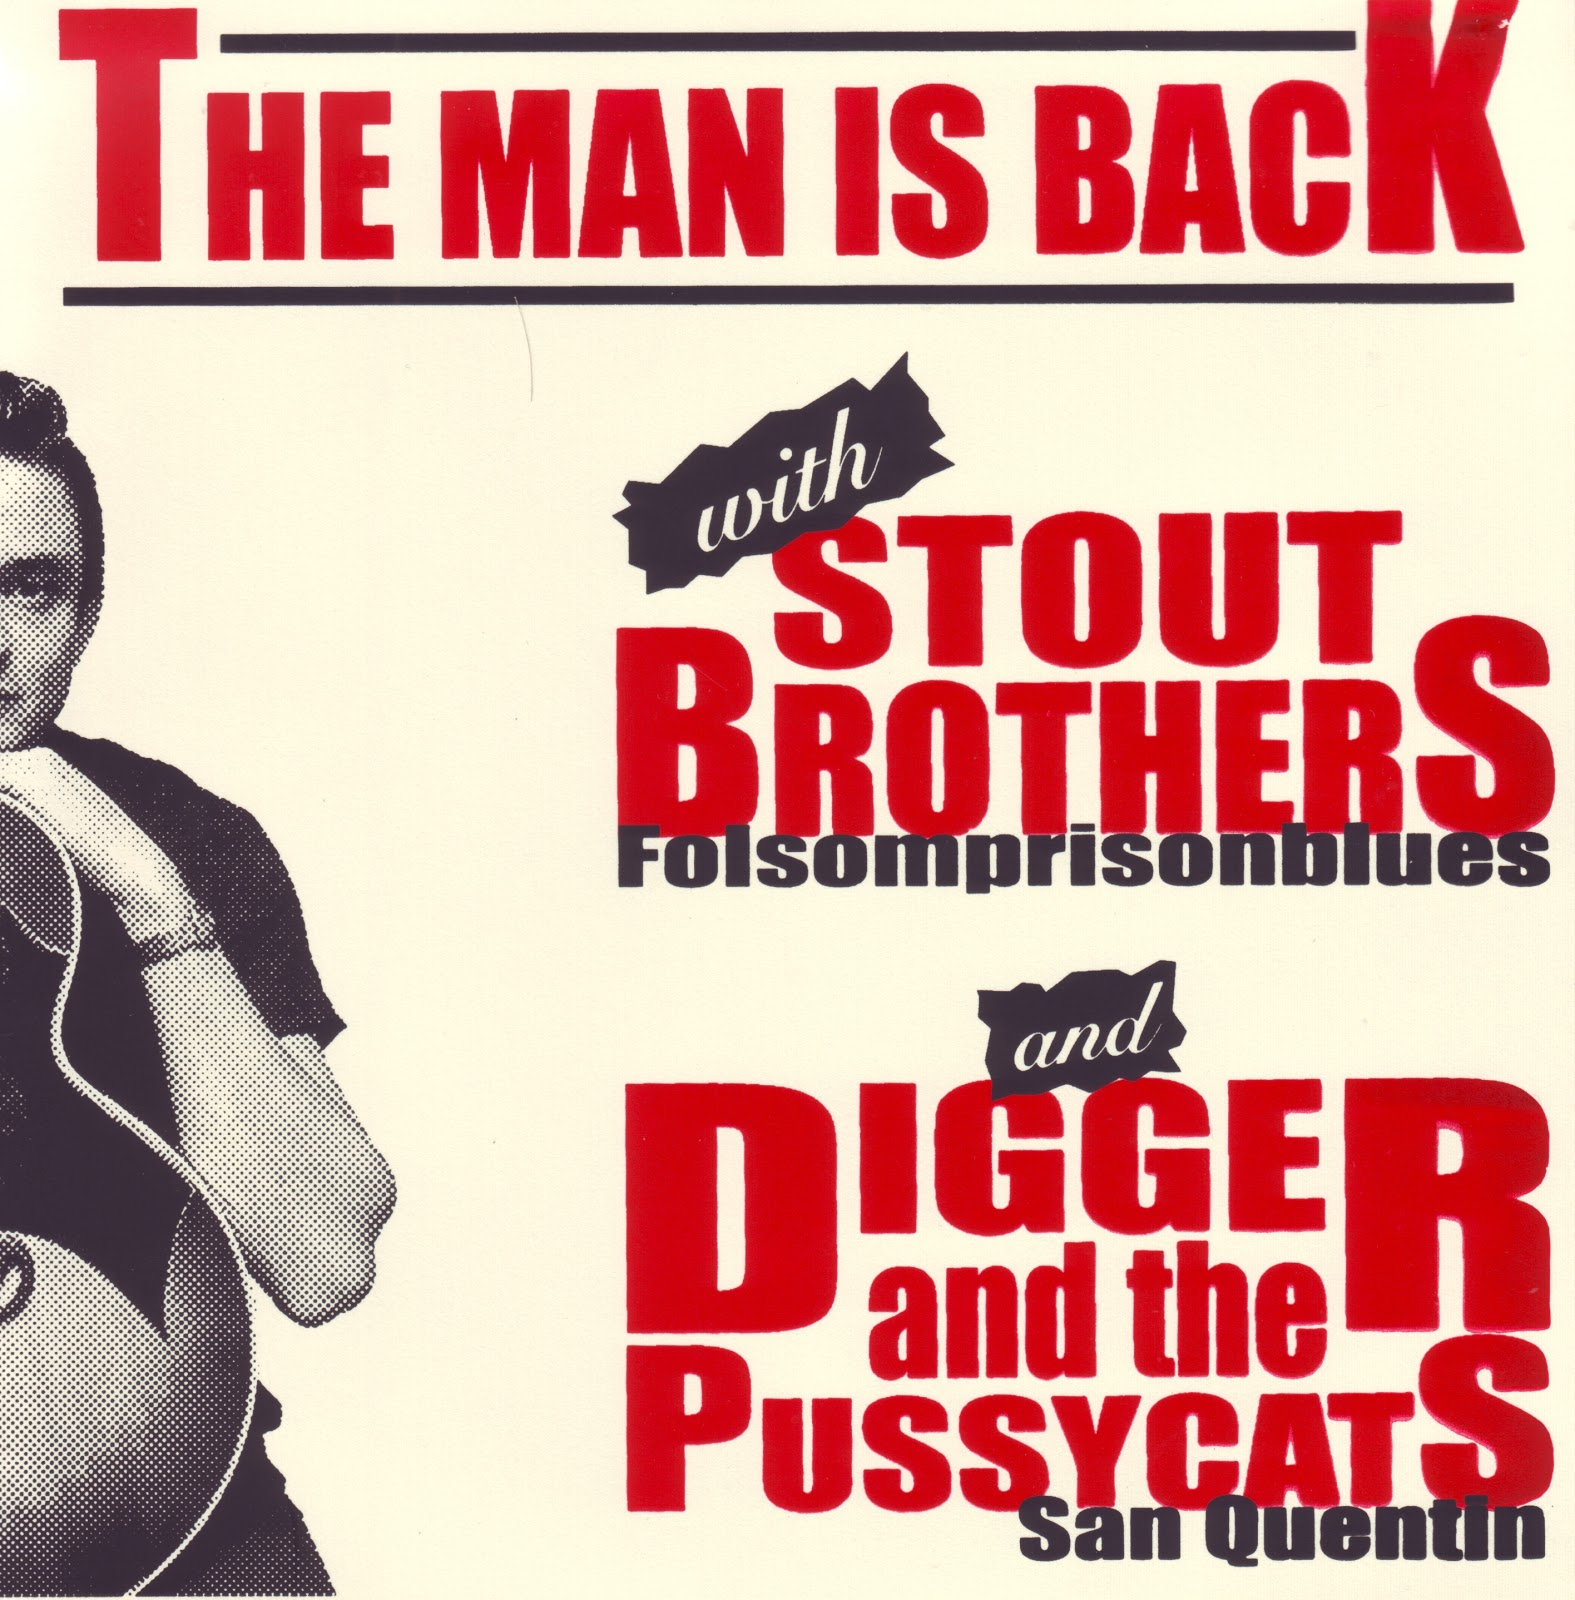 Stout Brothers / Digger & The Pussycats* Digger And The Pussycats - The Man Is Back